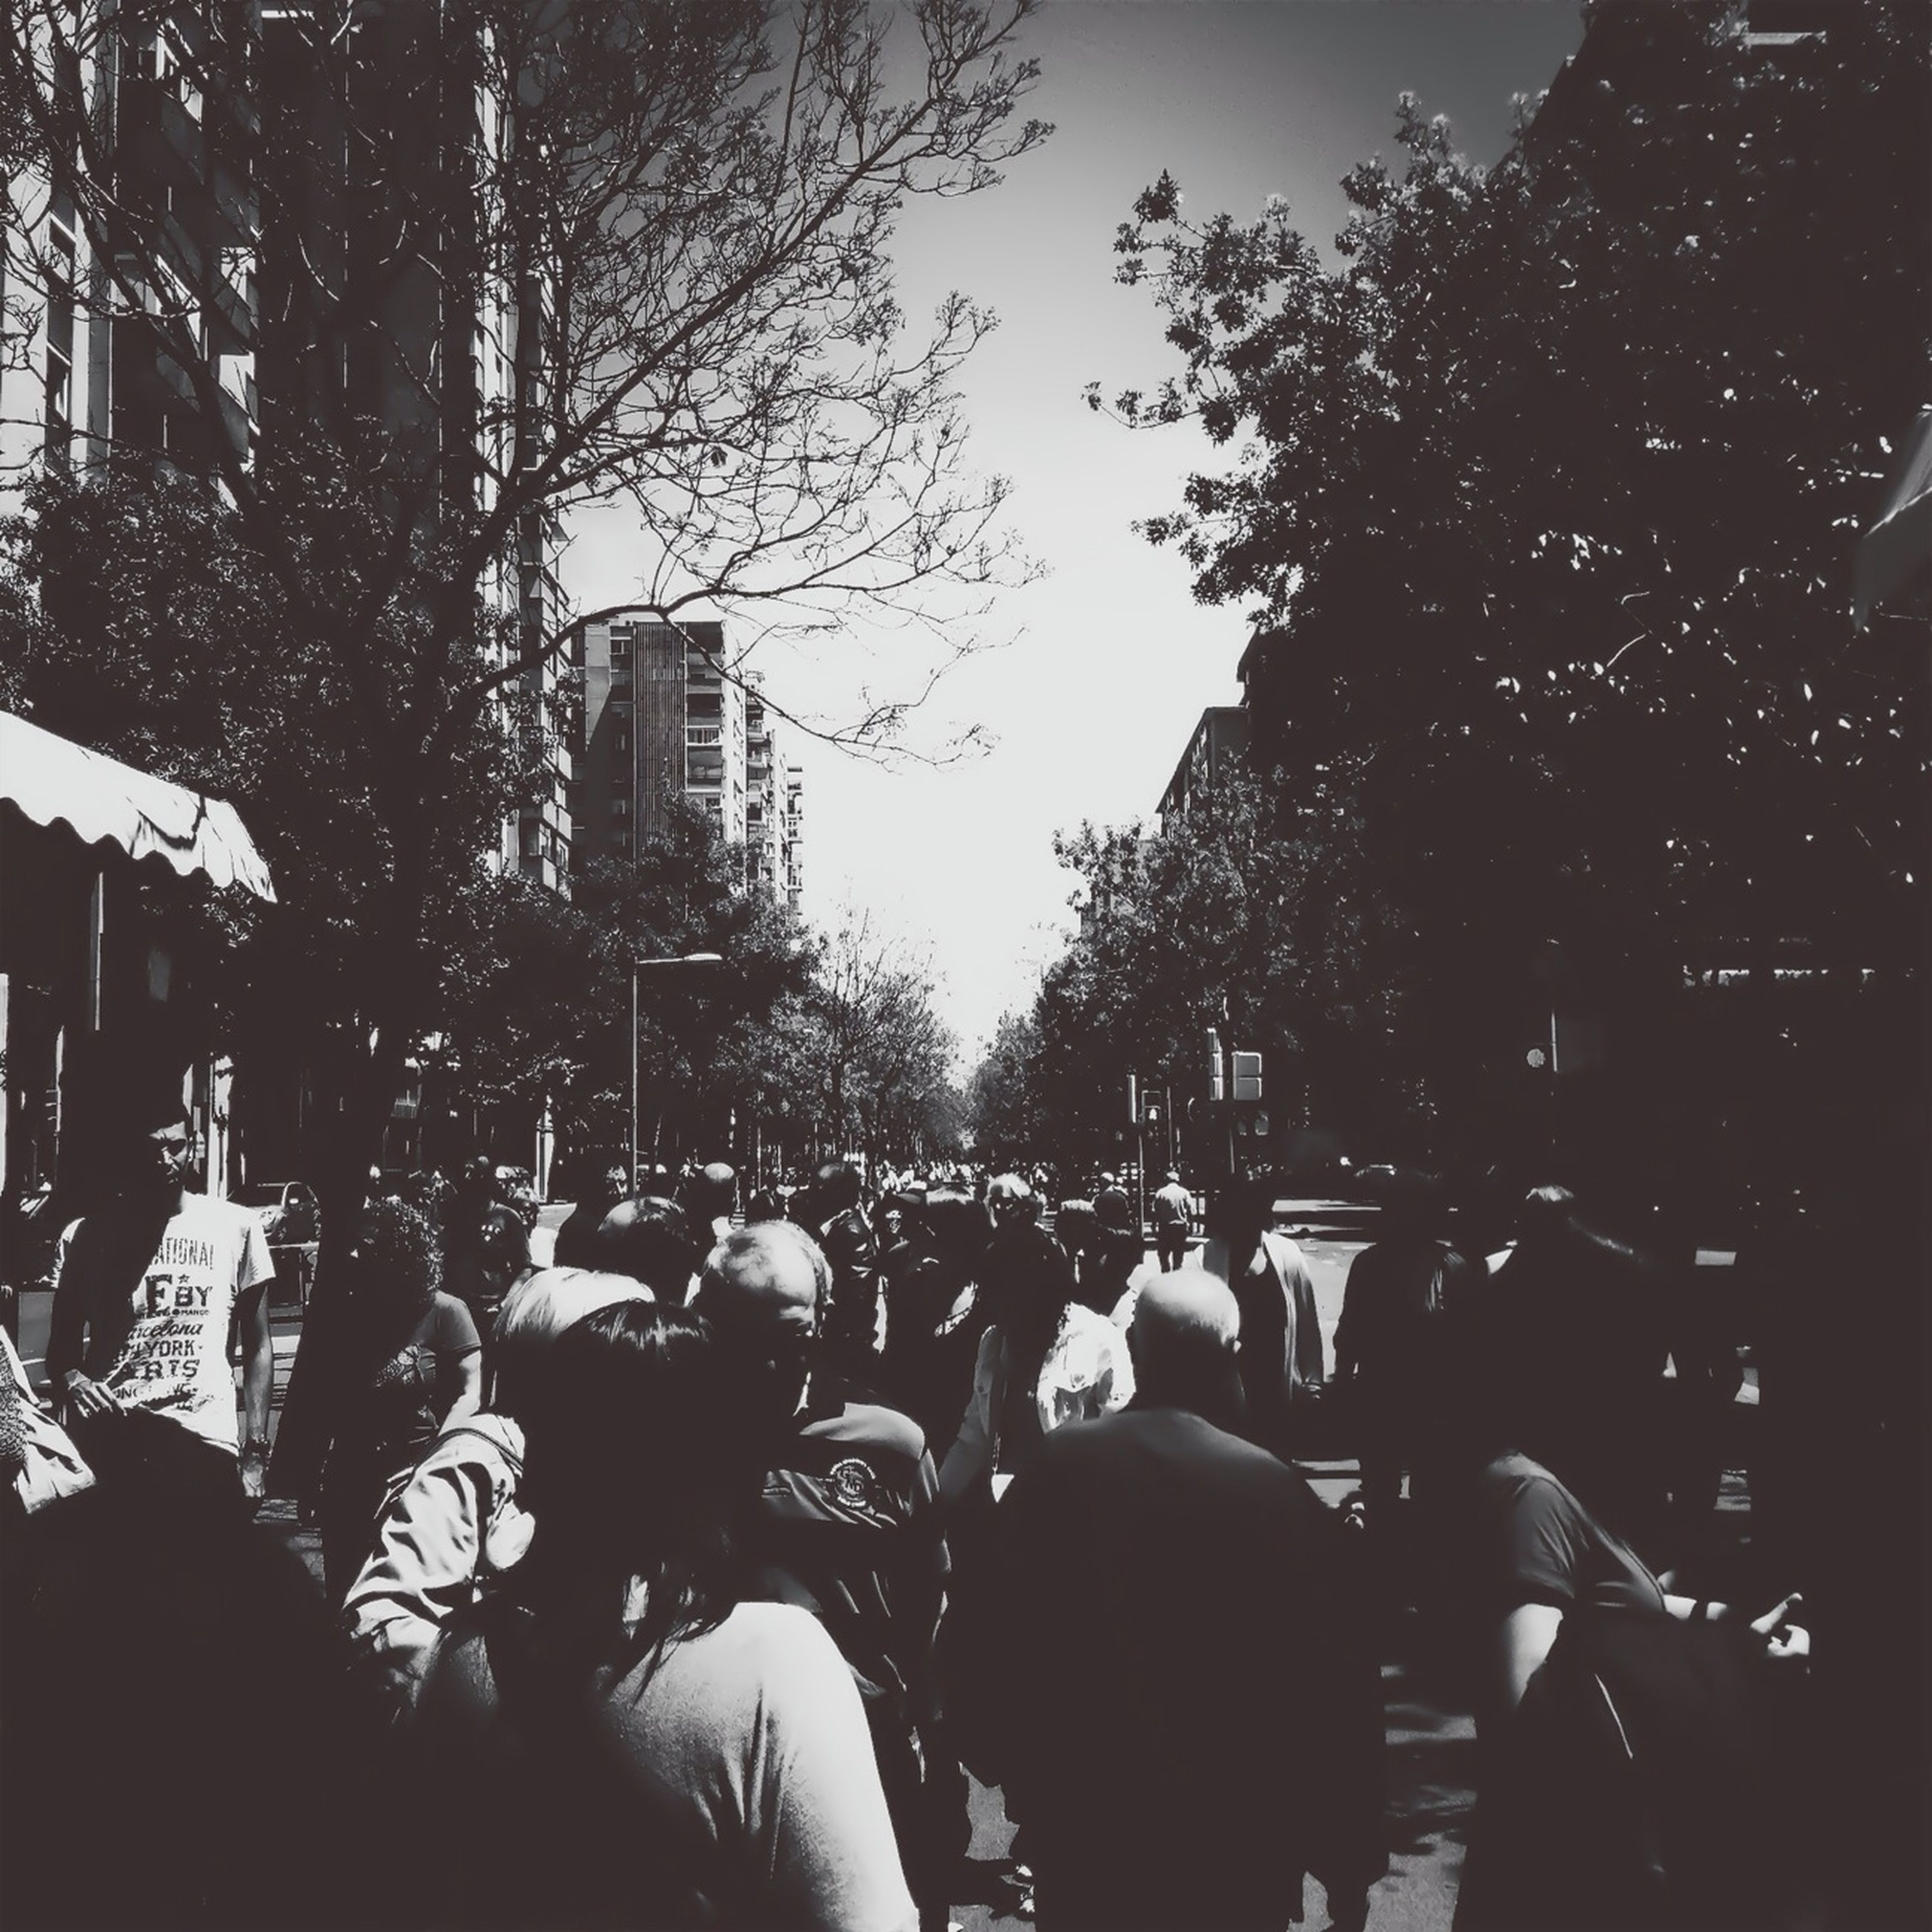 large group of people, crowd, men, person, lifestyles, building exterior, leisure activity, city, tree, city life, street, built structure, architecture, silhouette, mixed age range, togetherness, crowded, clear sky, outdoors